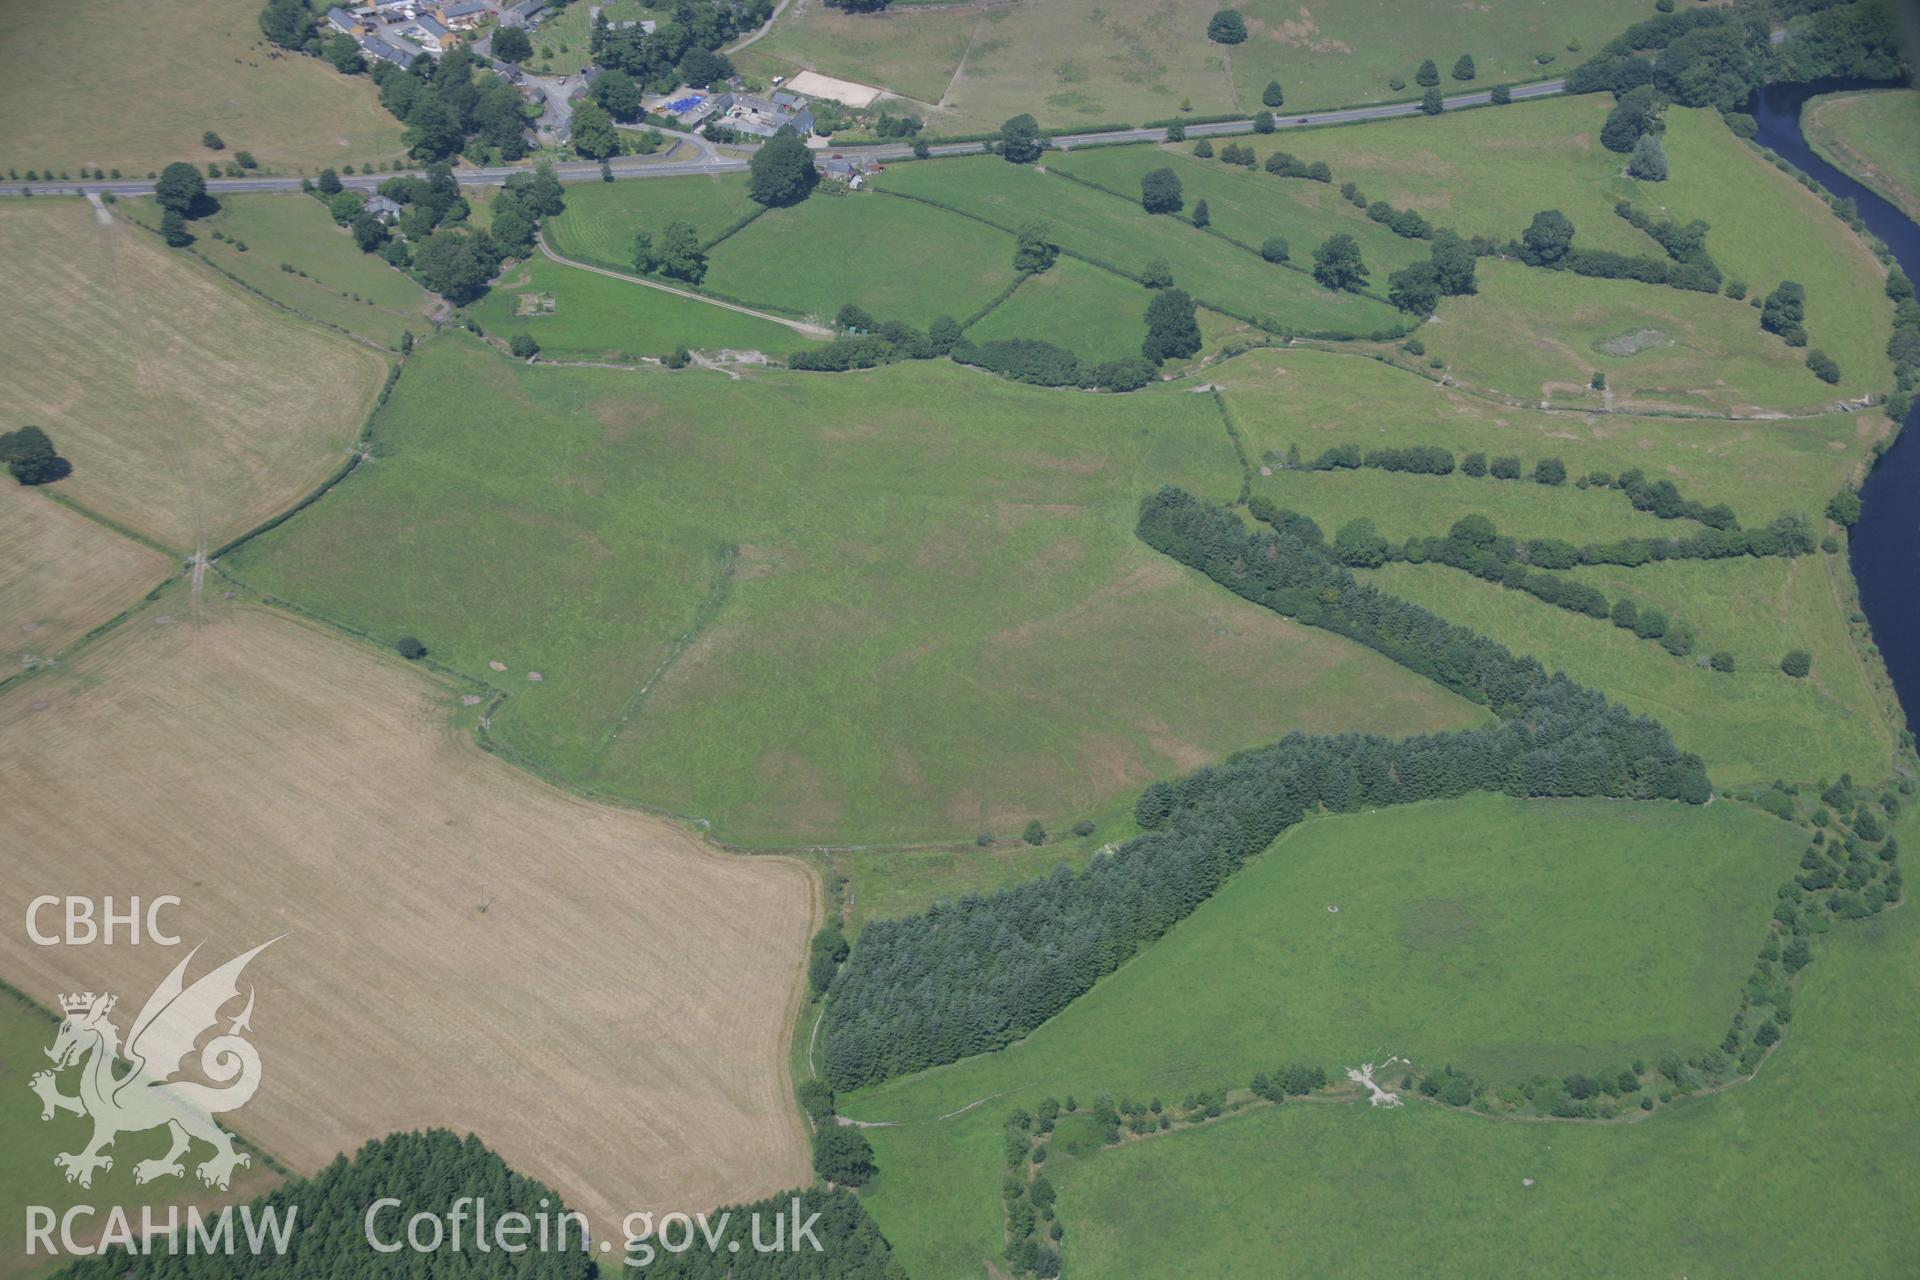 RCAHMW colour oblique aerial photograph of Llanfor Roman Fort. Taken on 18 July 2006 by Toby Driver.